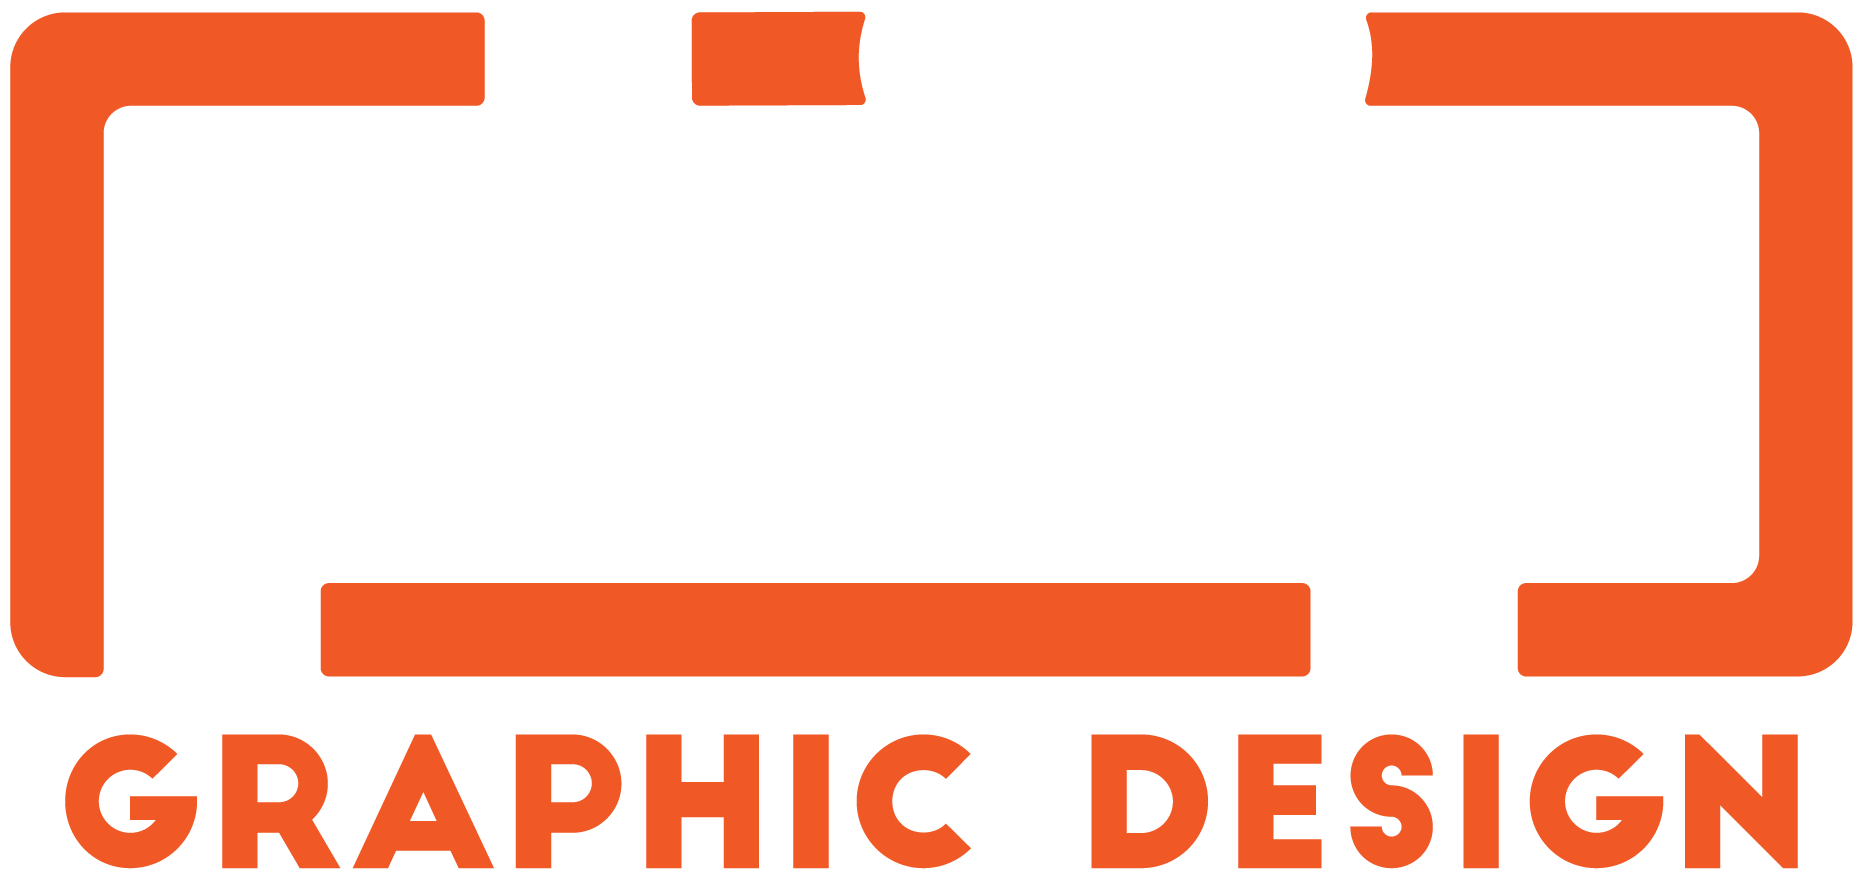 Philip - Graphic Design